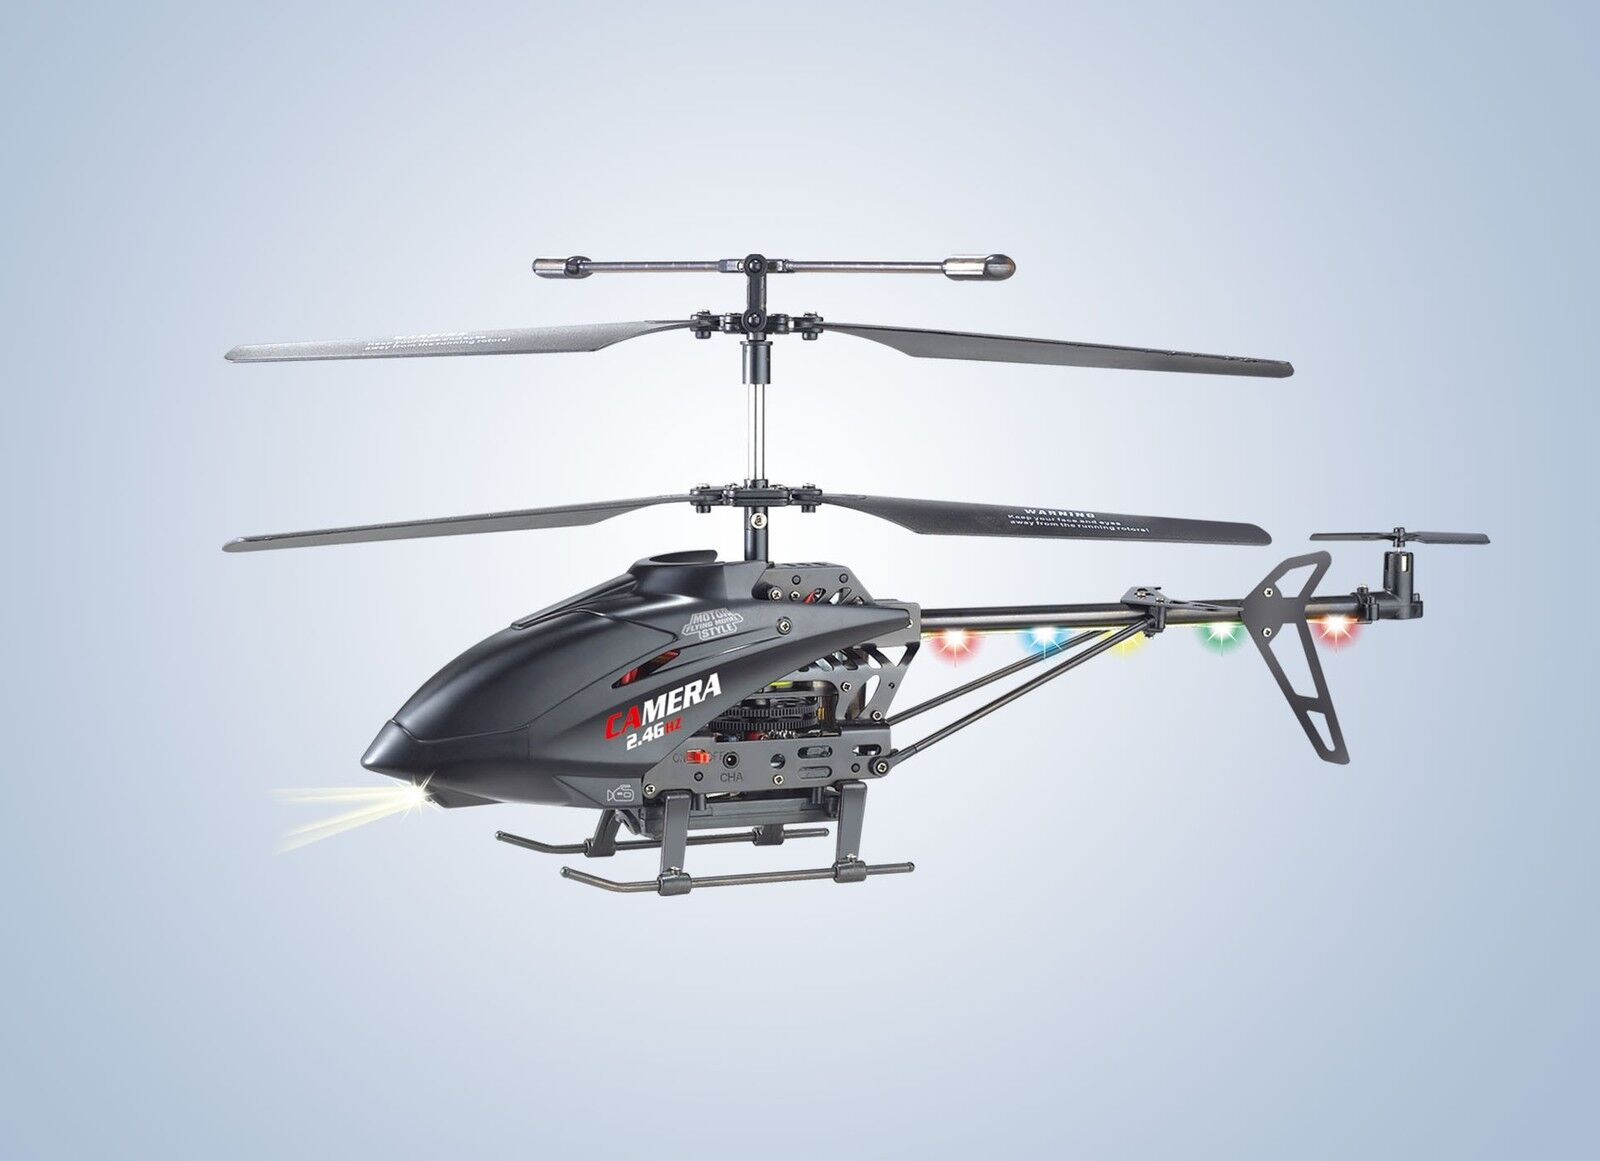 Rcu13a Helicopter Helicopter LED2, 4 GHz Video Camera+2gbmicosd Card